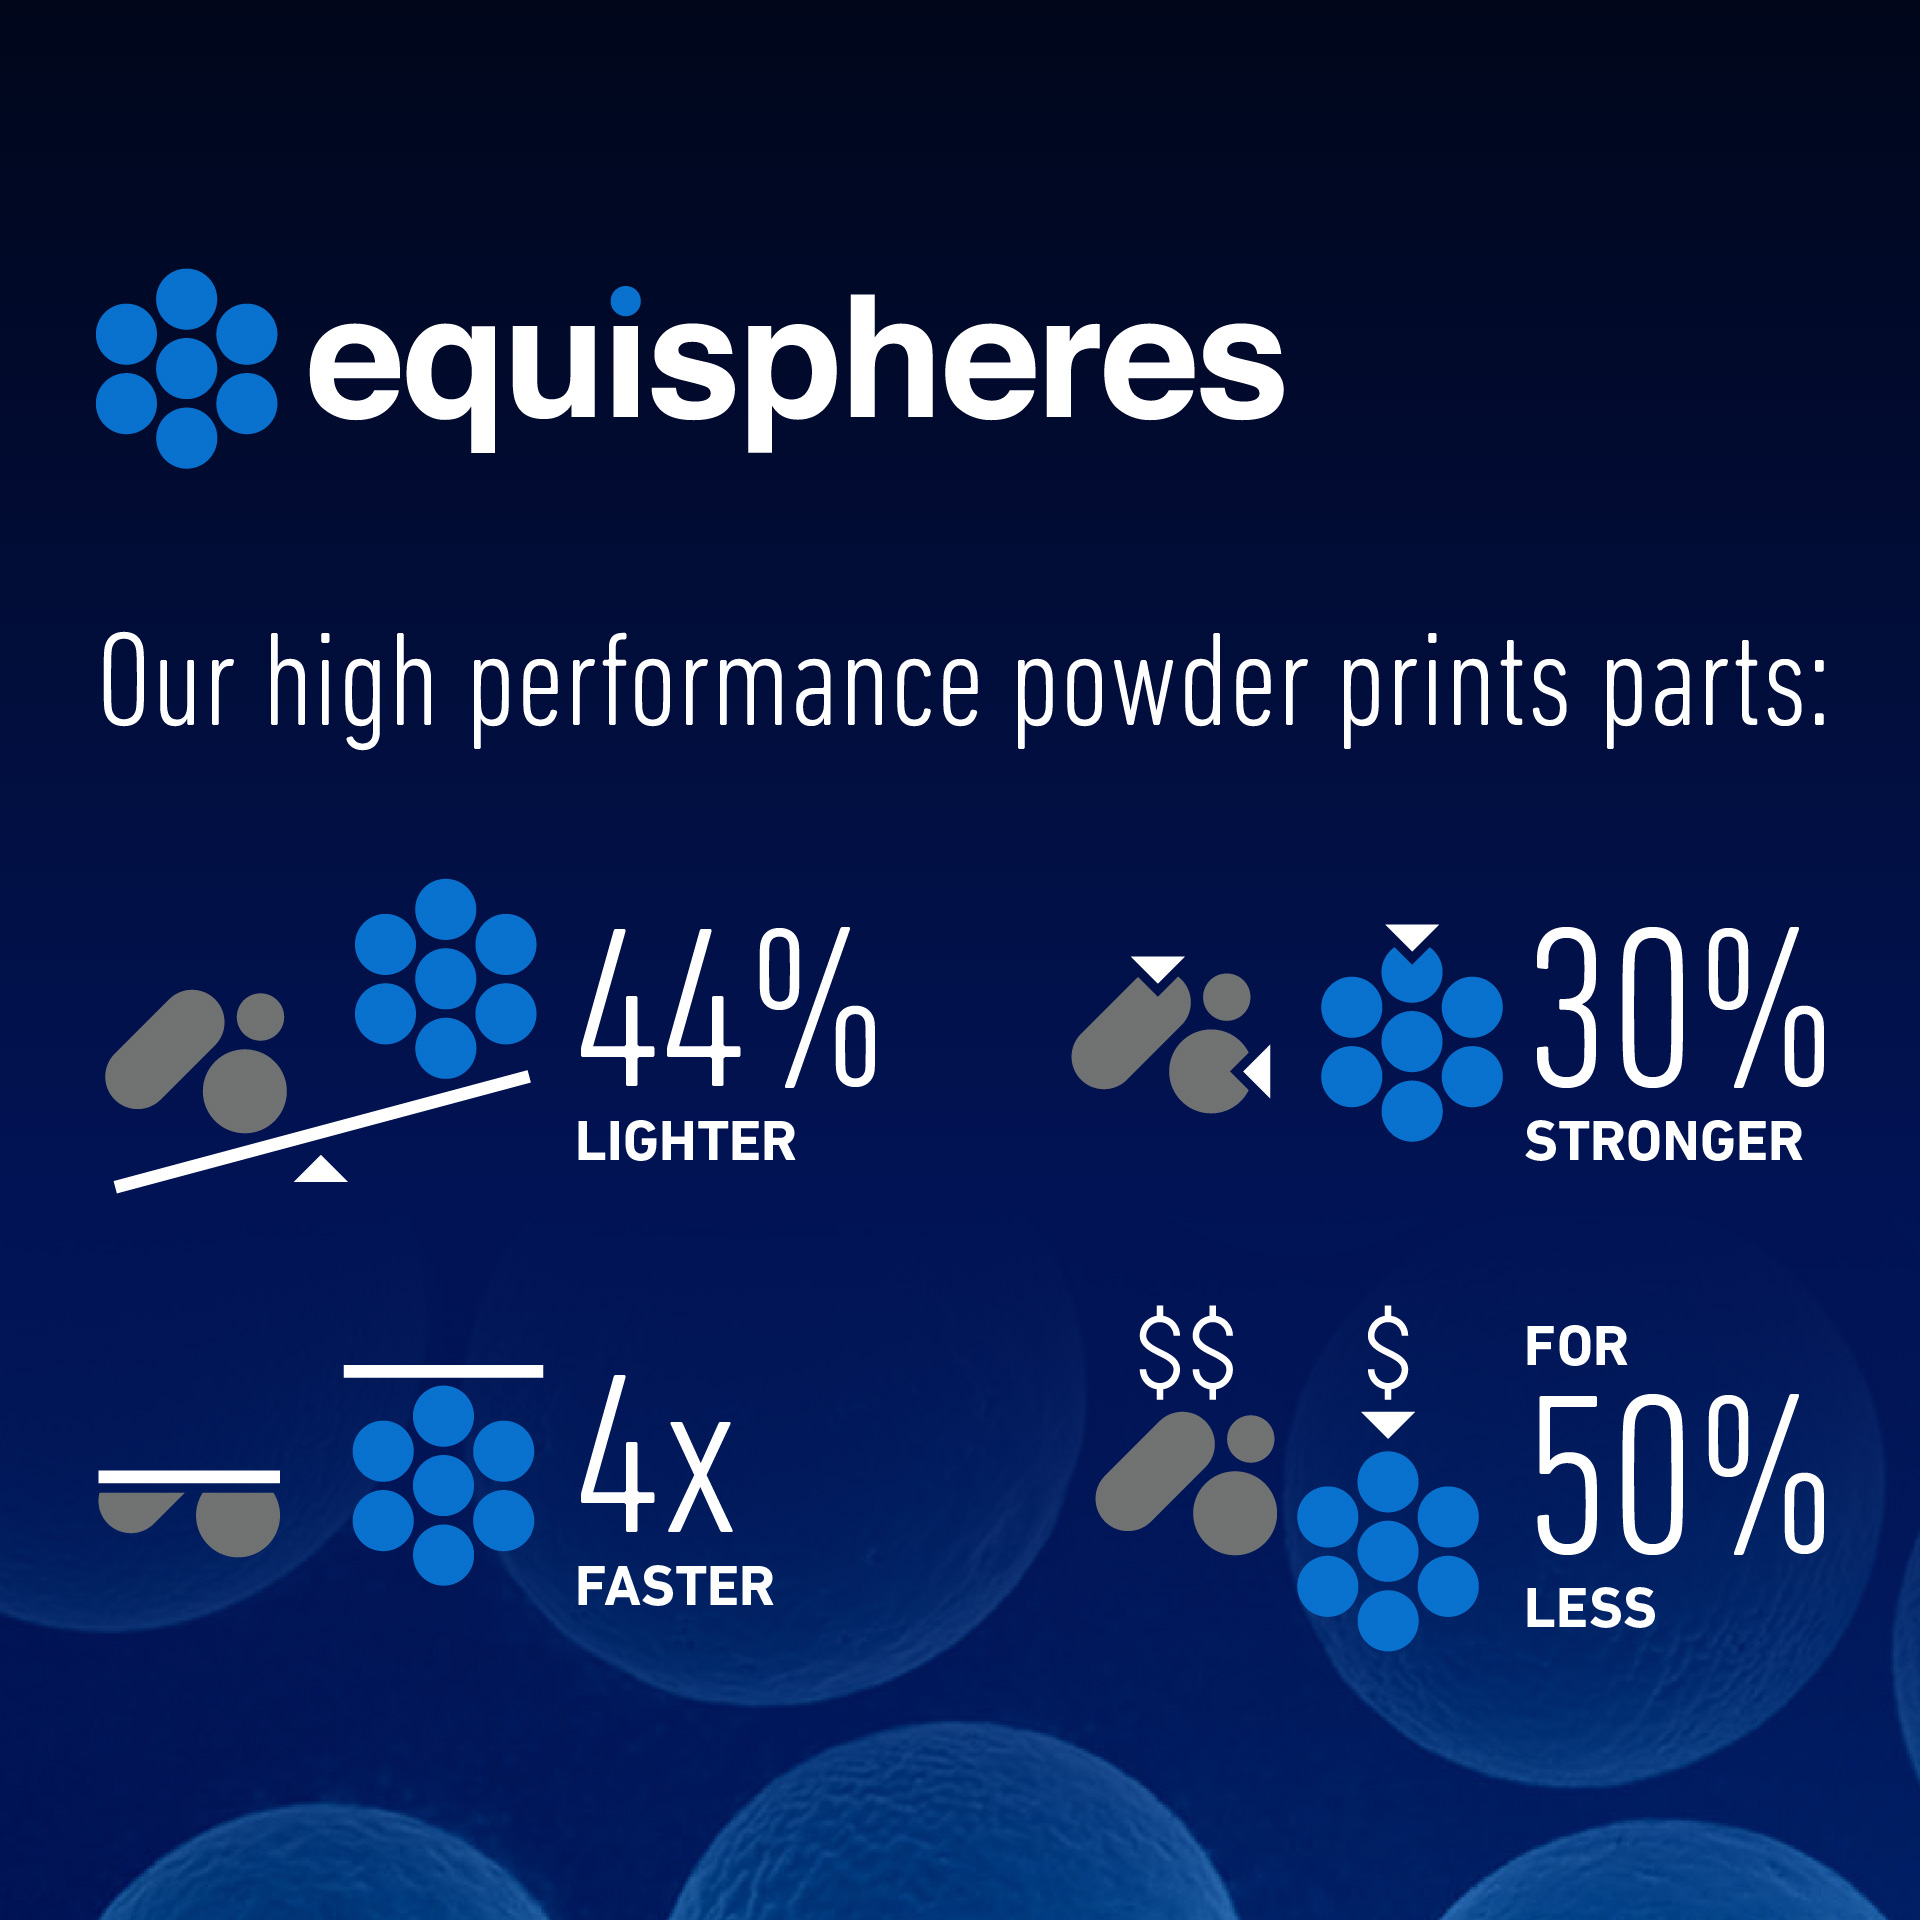 Our powder prints parts that are lighter and stronger, at a faster rate, at a lower cost.